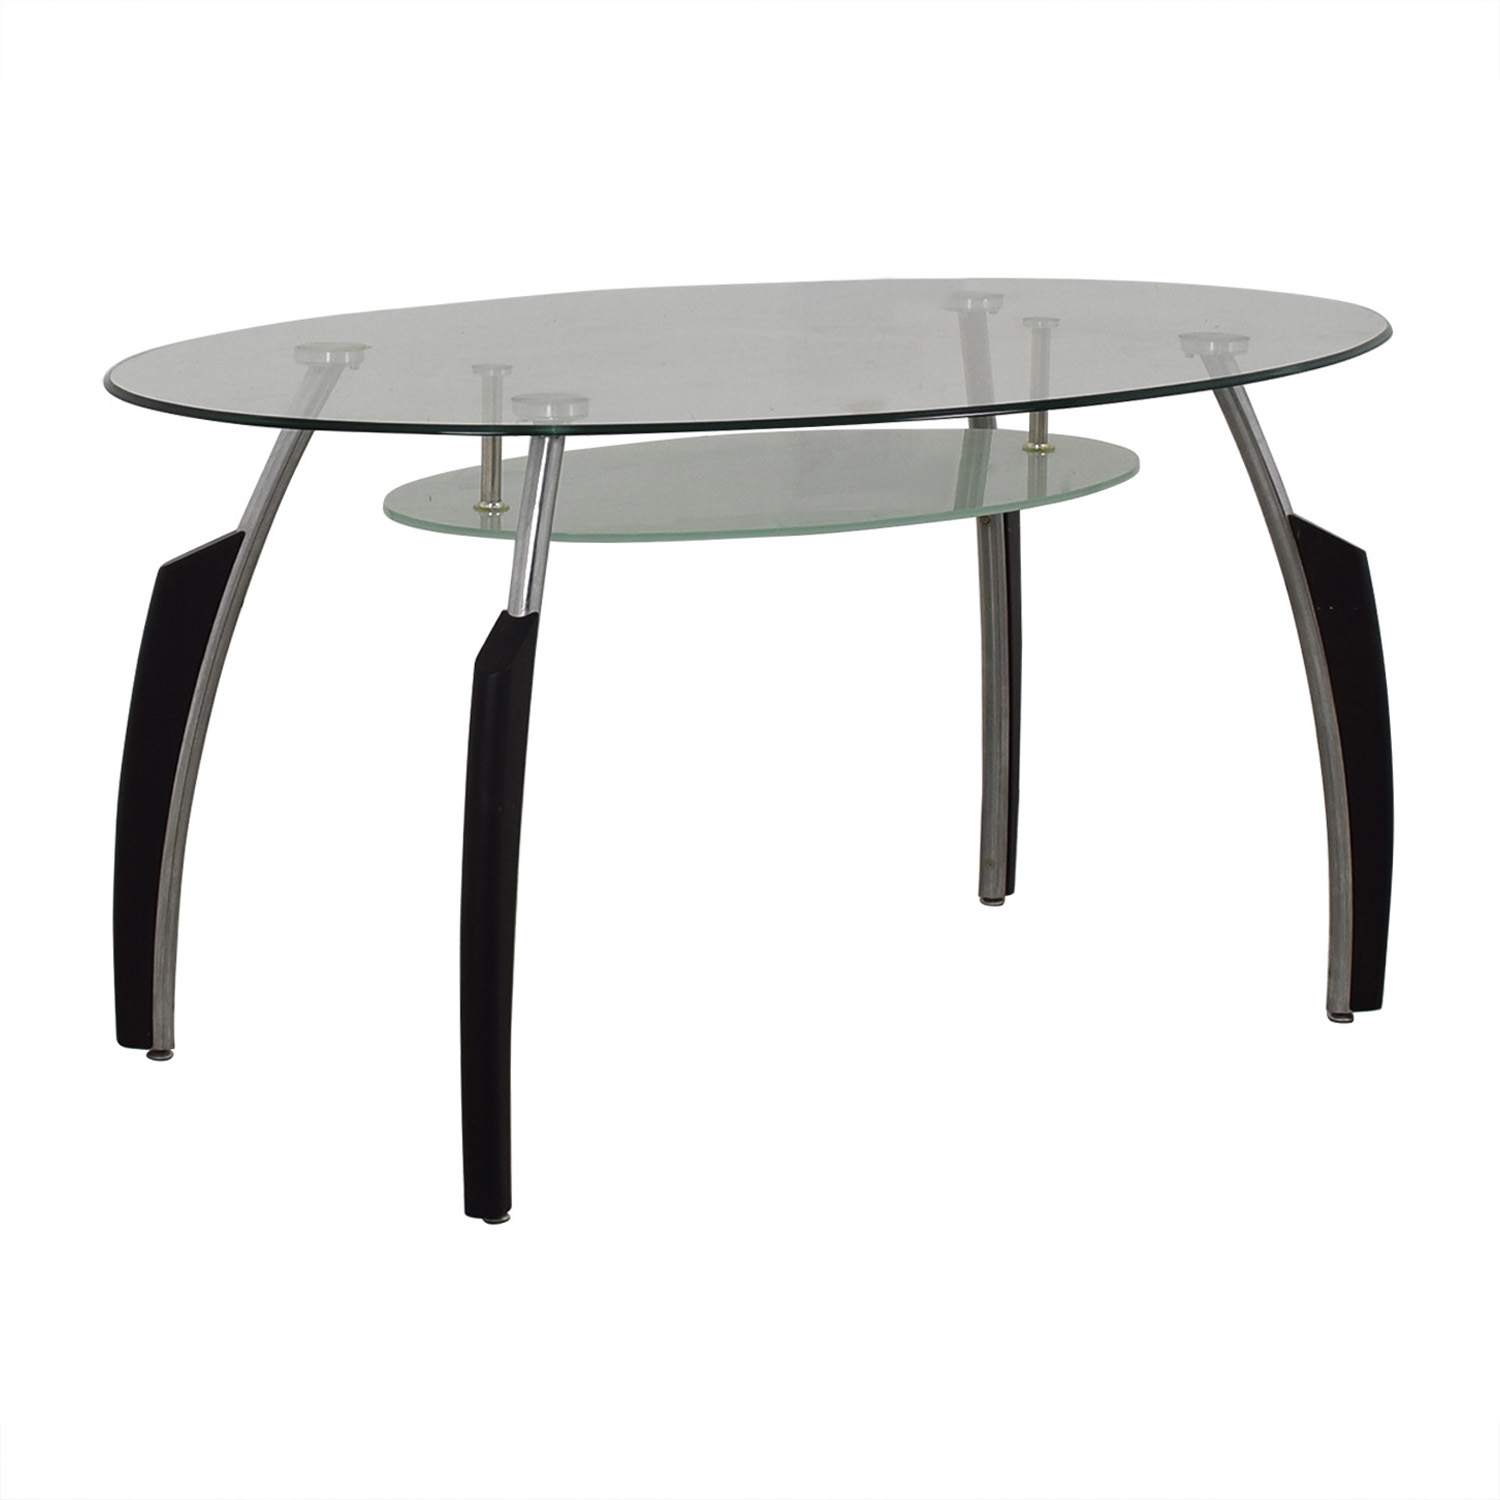 AE Furniture Oval Dining Table used